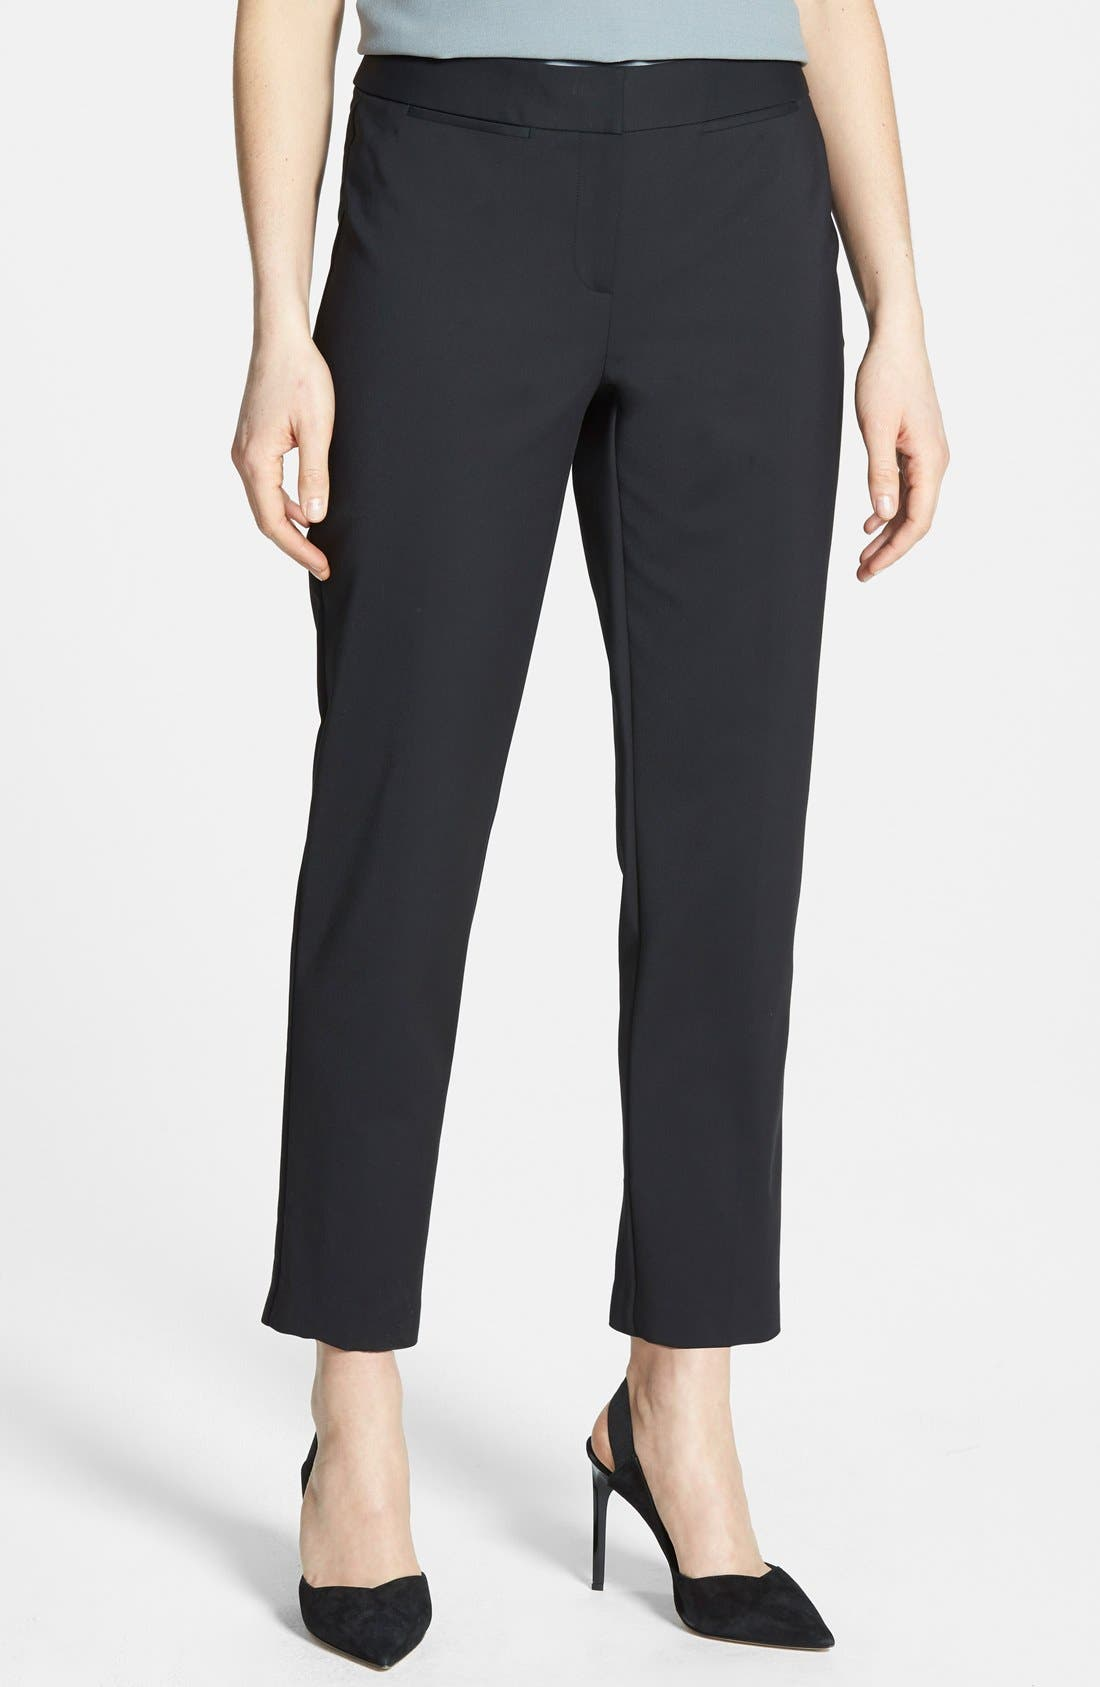 Nordstrom Collection 'Veloria' Slim Ankle Pants